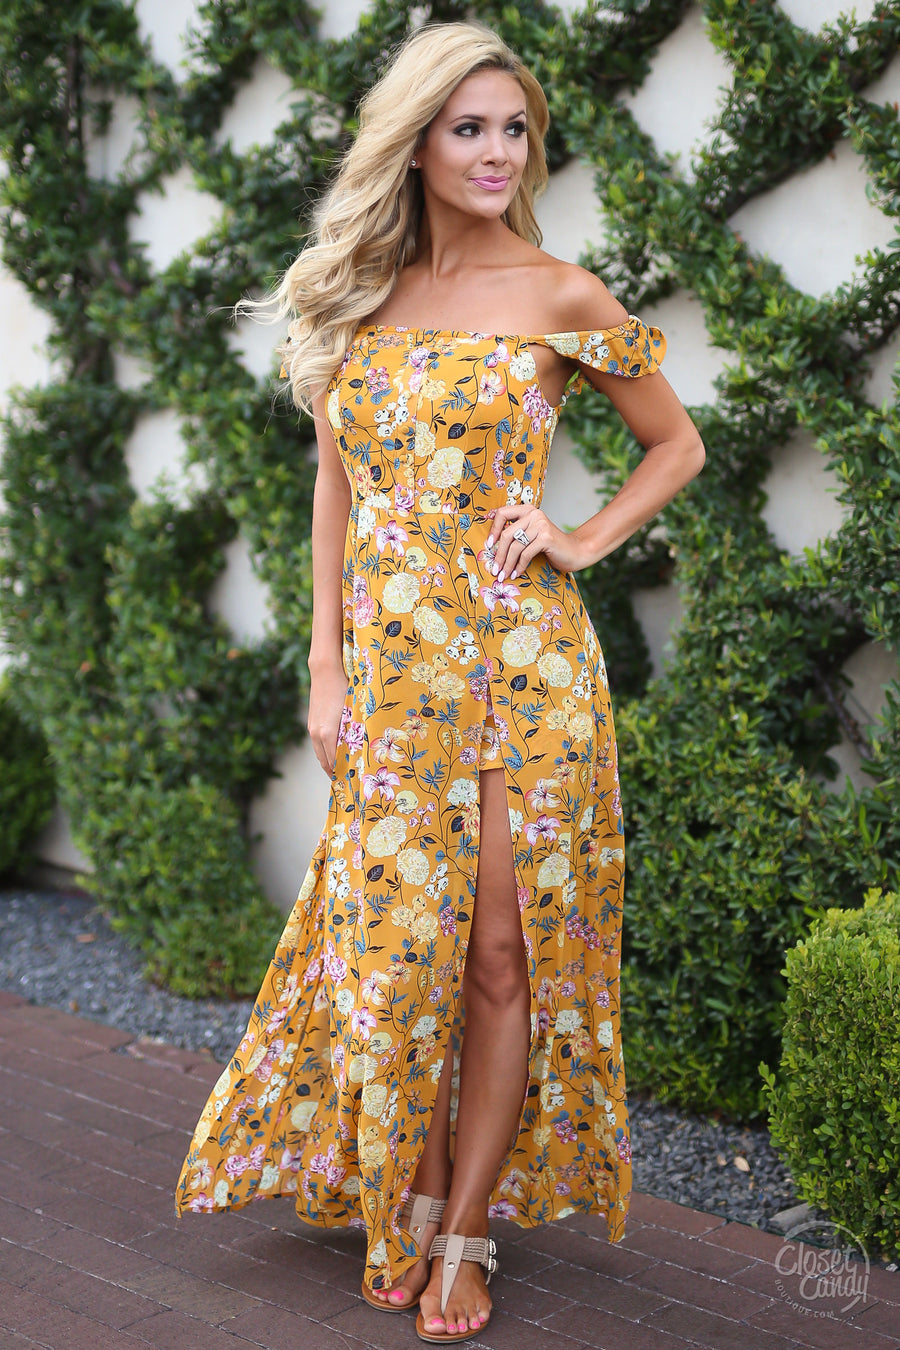 Woke Up In Nashville Maxi Romper - Mustard floral off the shoulder dress with shorts trendy clothes closet candy boutique